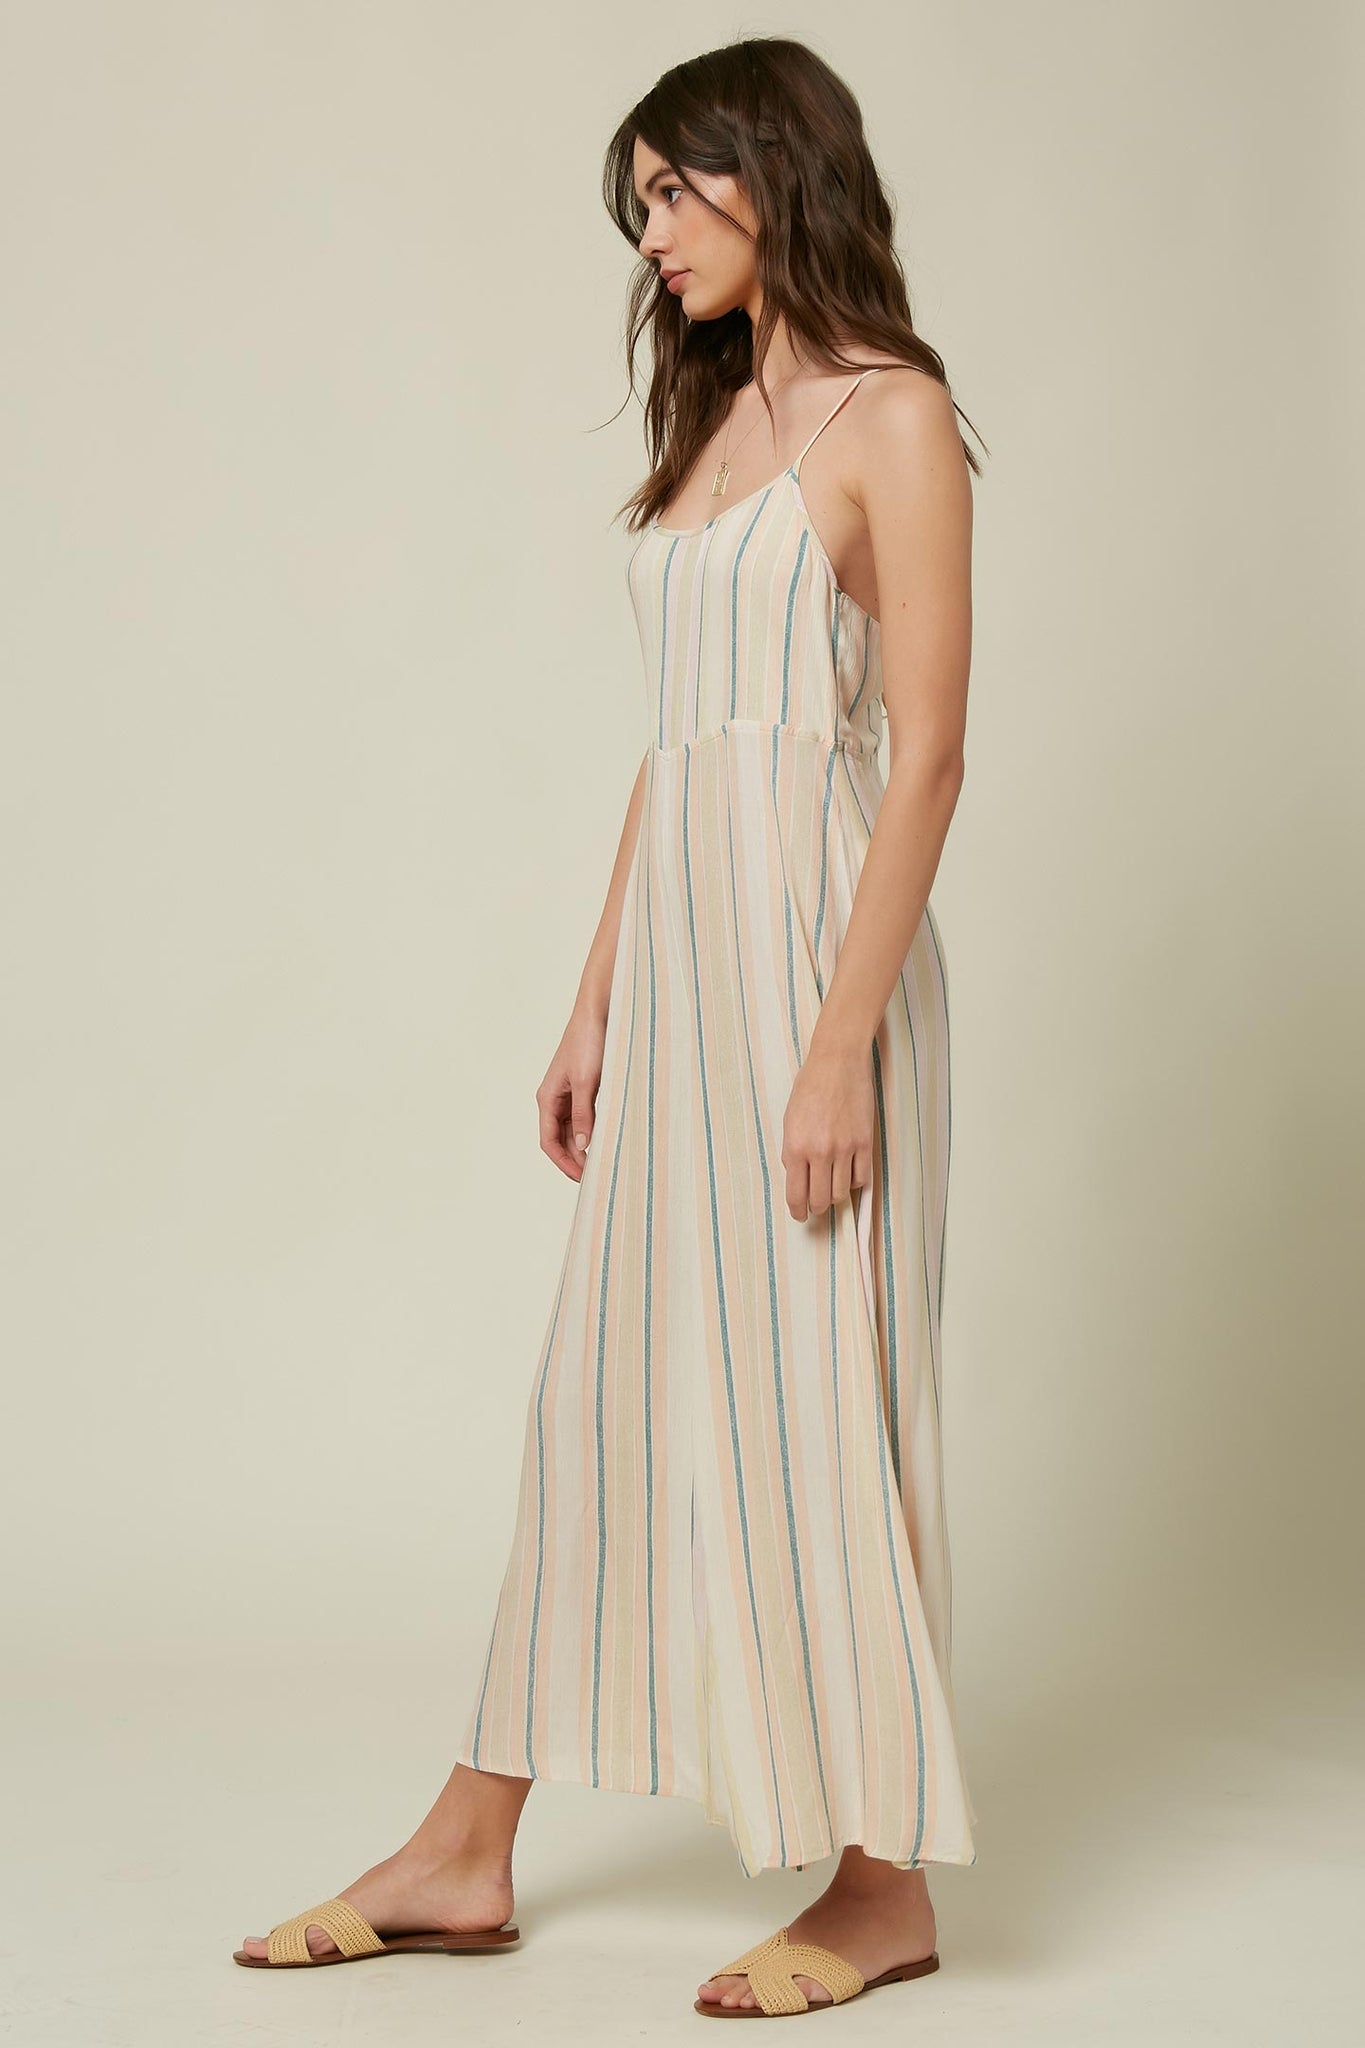 Juls Stripe Jumpsuit - Multi Colored | O'Neill